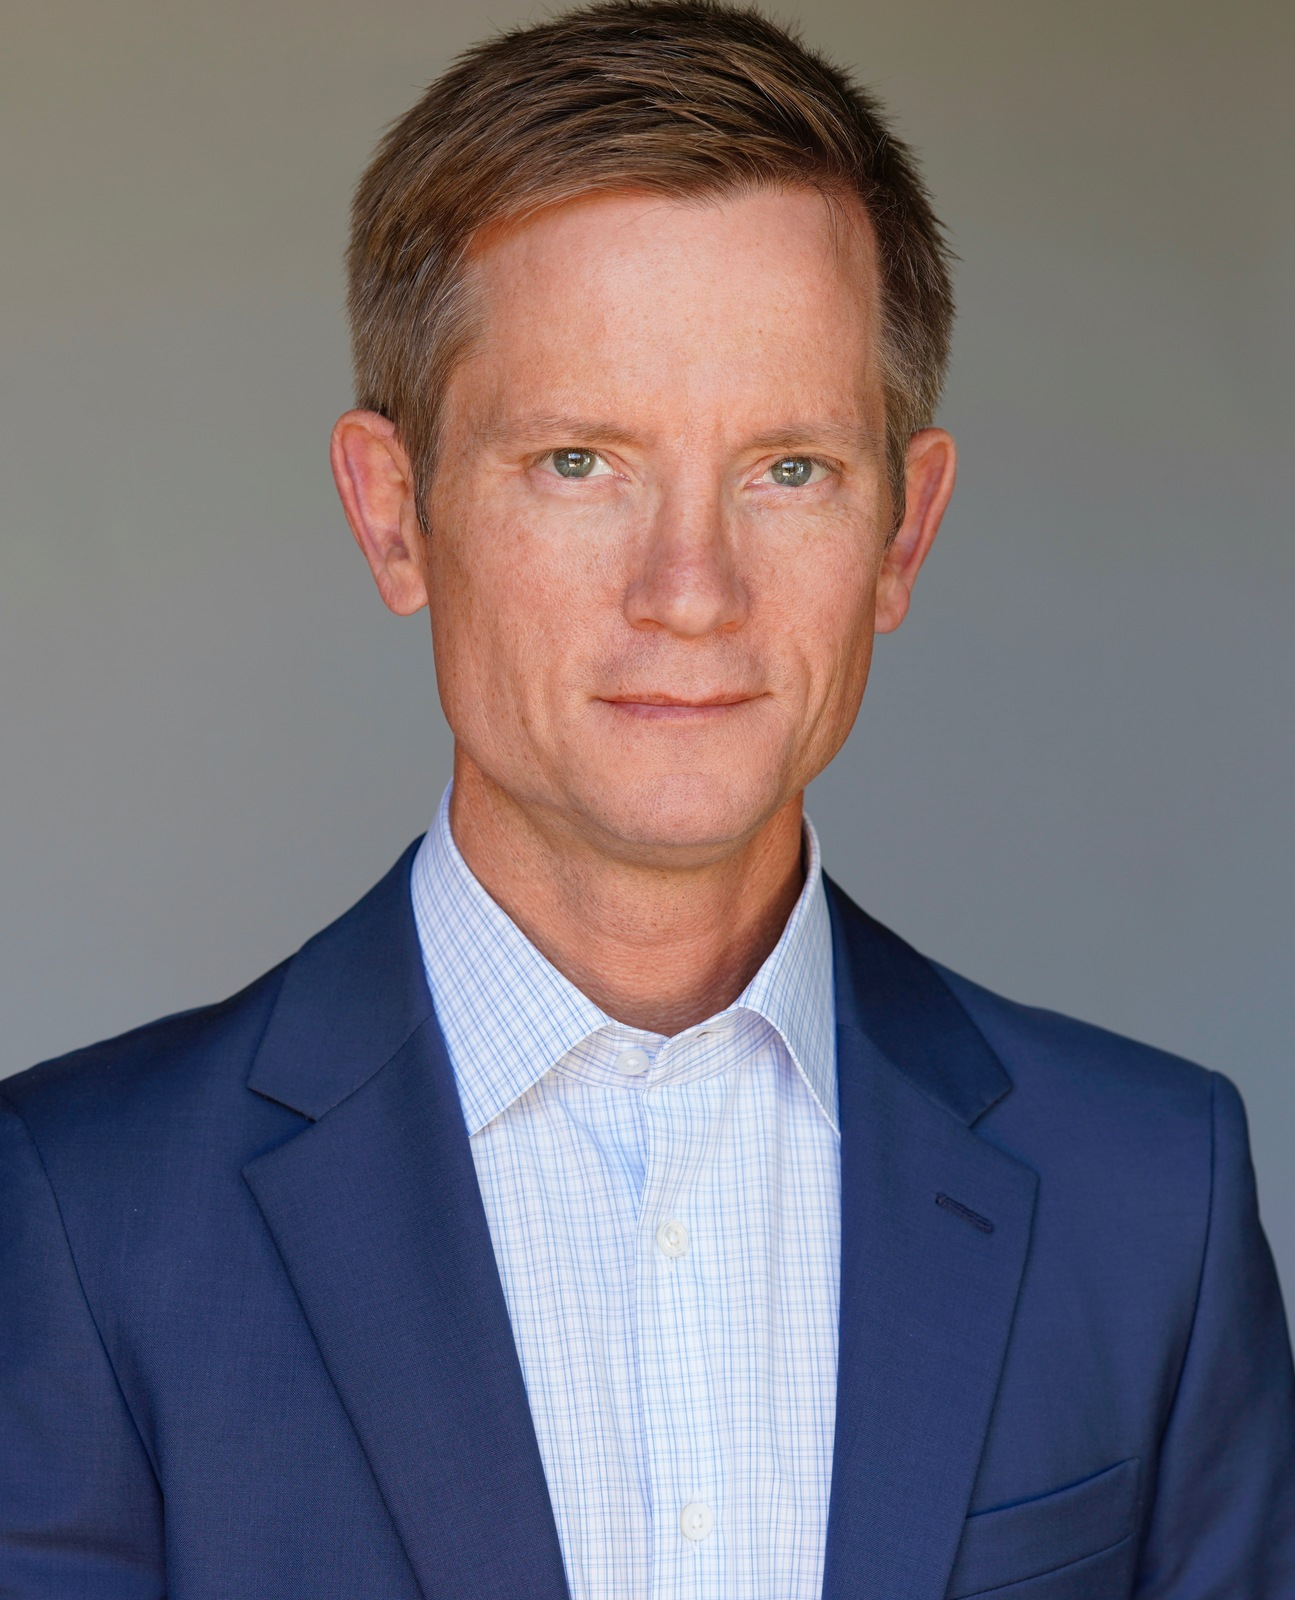 Photo of Eric W Johnson - Morgan Stanley